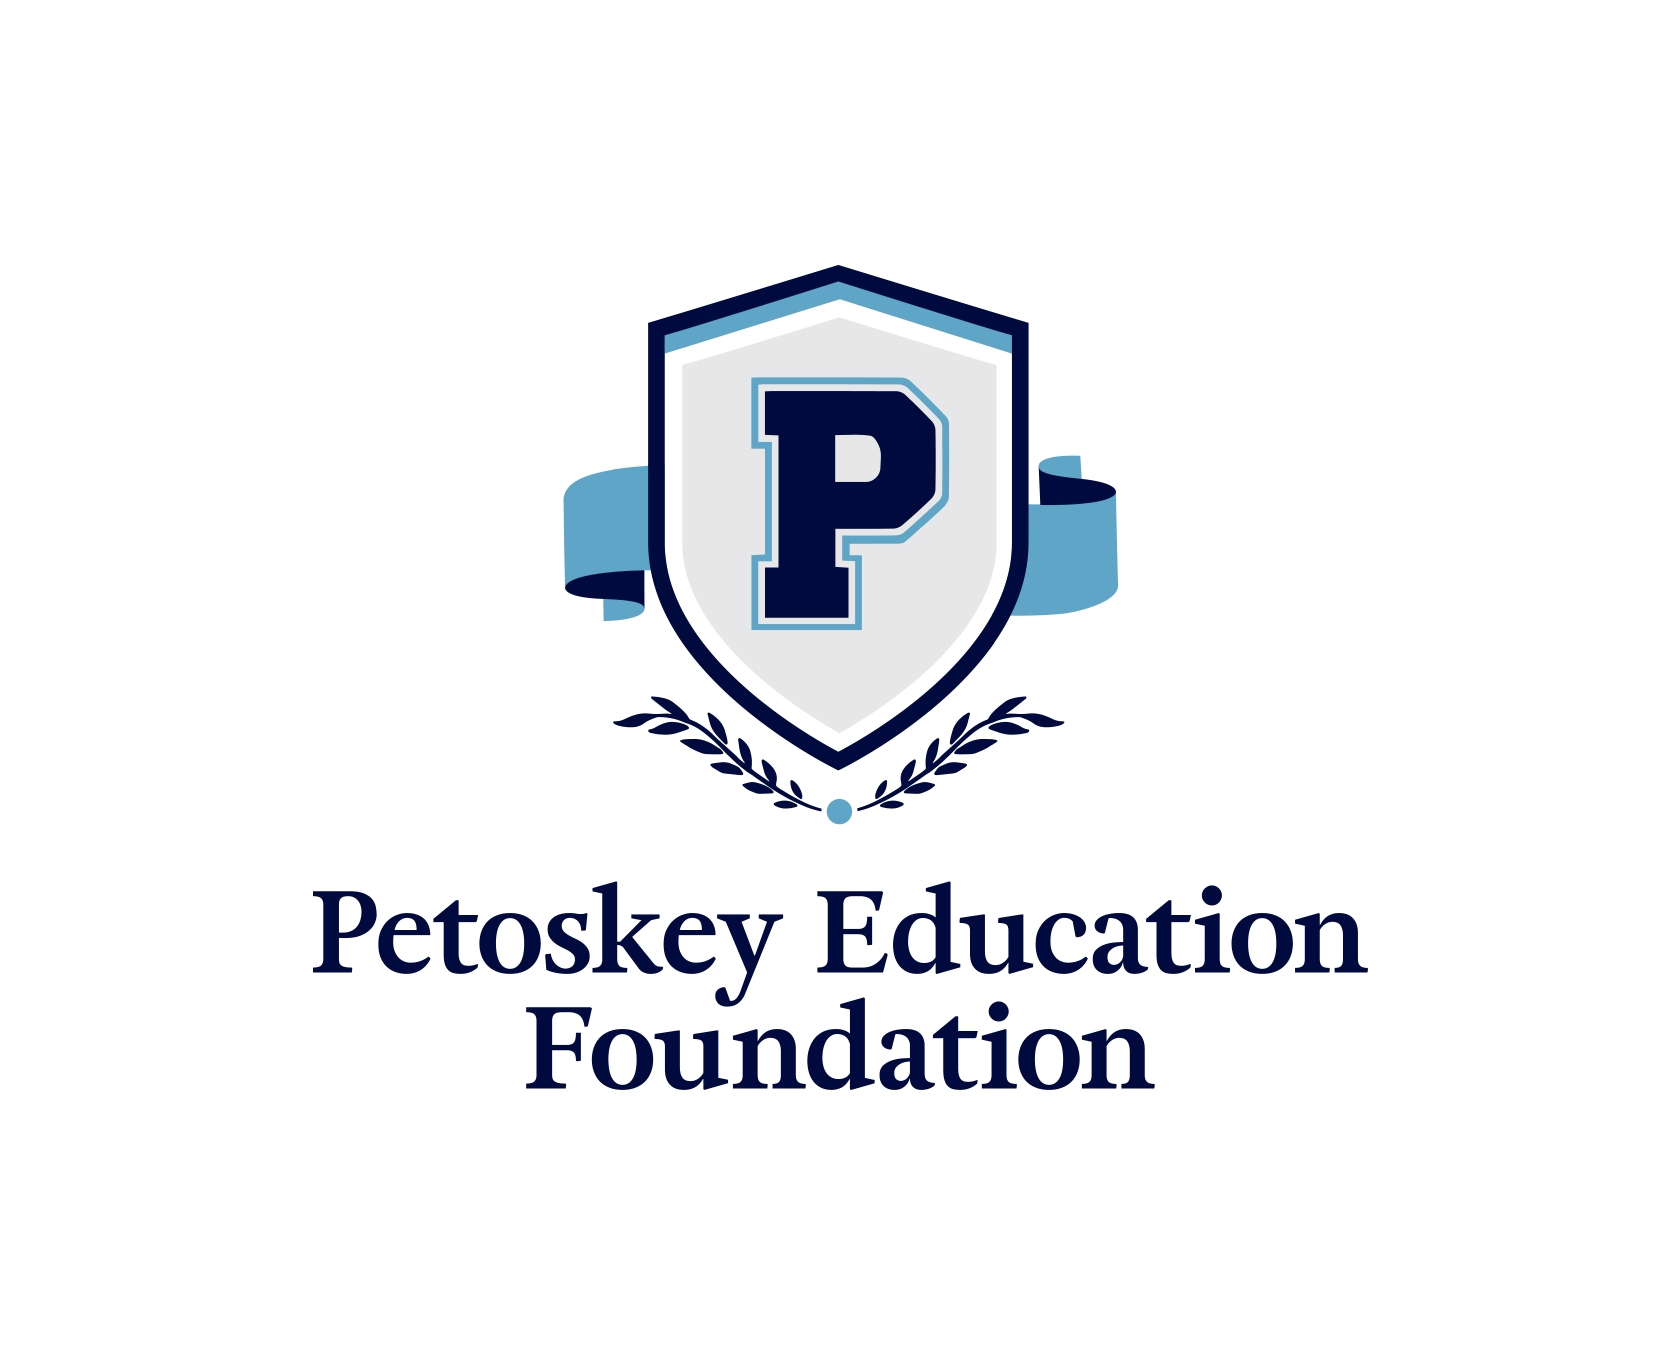 Petoskey Education Foundation